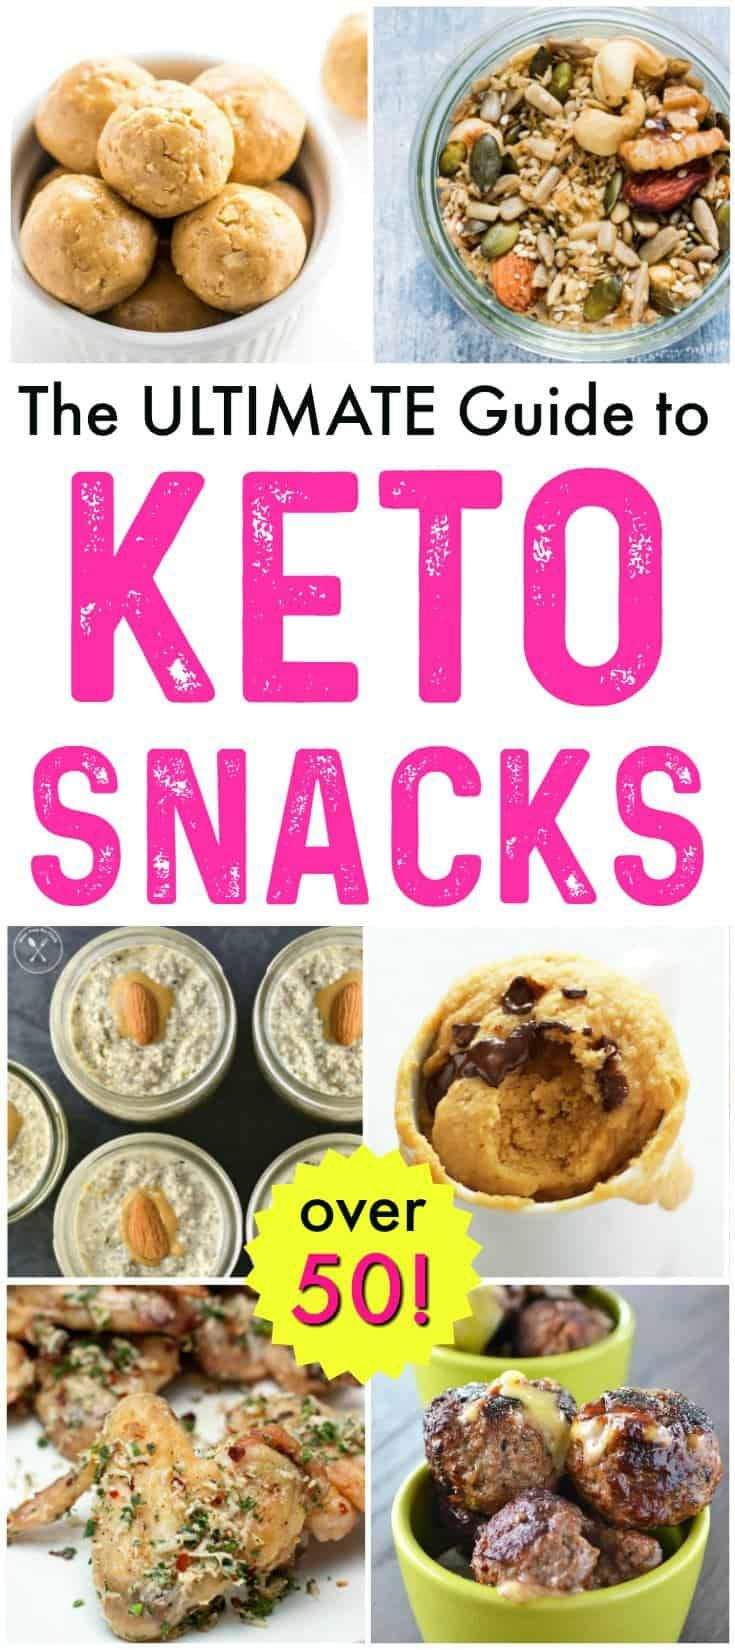 These AMAZING keto snacks will make the keto diet SO easy to follow!! You will love this huge assortment of over 50 keto friendly snacks and keto snack ideas. Includes keto snack pantry essentials too! The BEST list of ketogenic snacks. #keto #ketogenic #ketodiet #ketorecipes #ketosnacks #ketogenicsnacks via @recipespantry